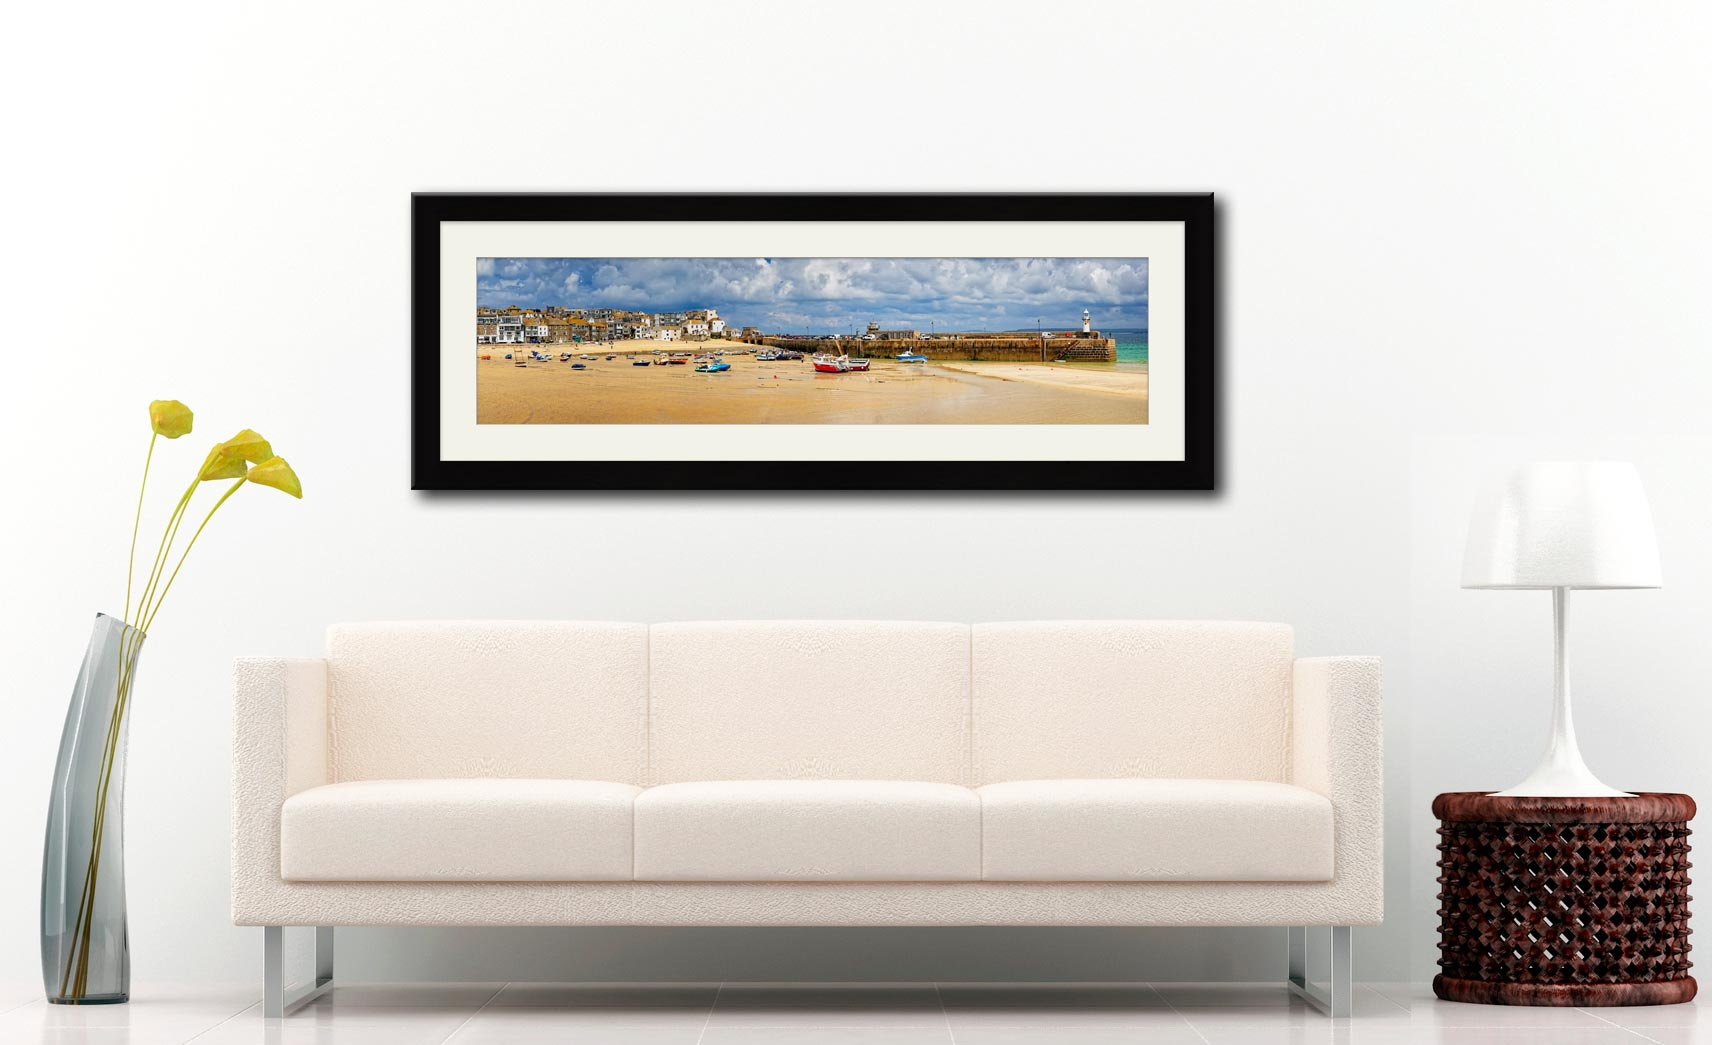 St Ives Cloudy Panorama - Framed Print with Mount on Wall